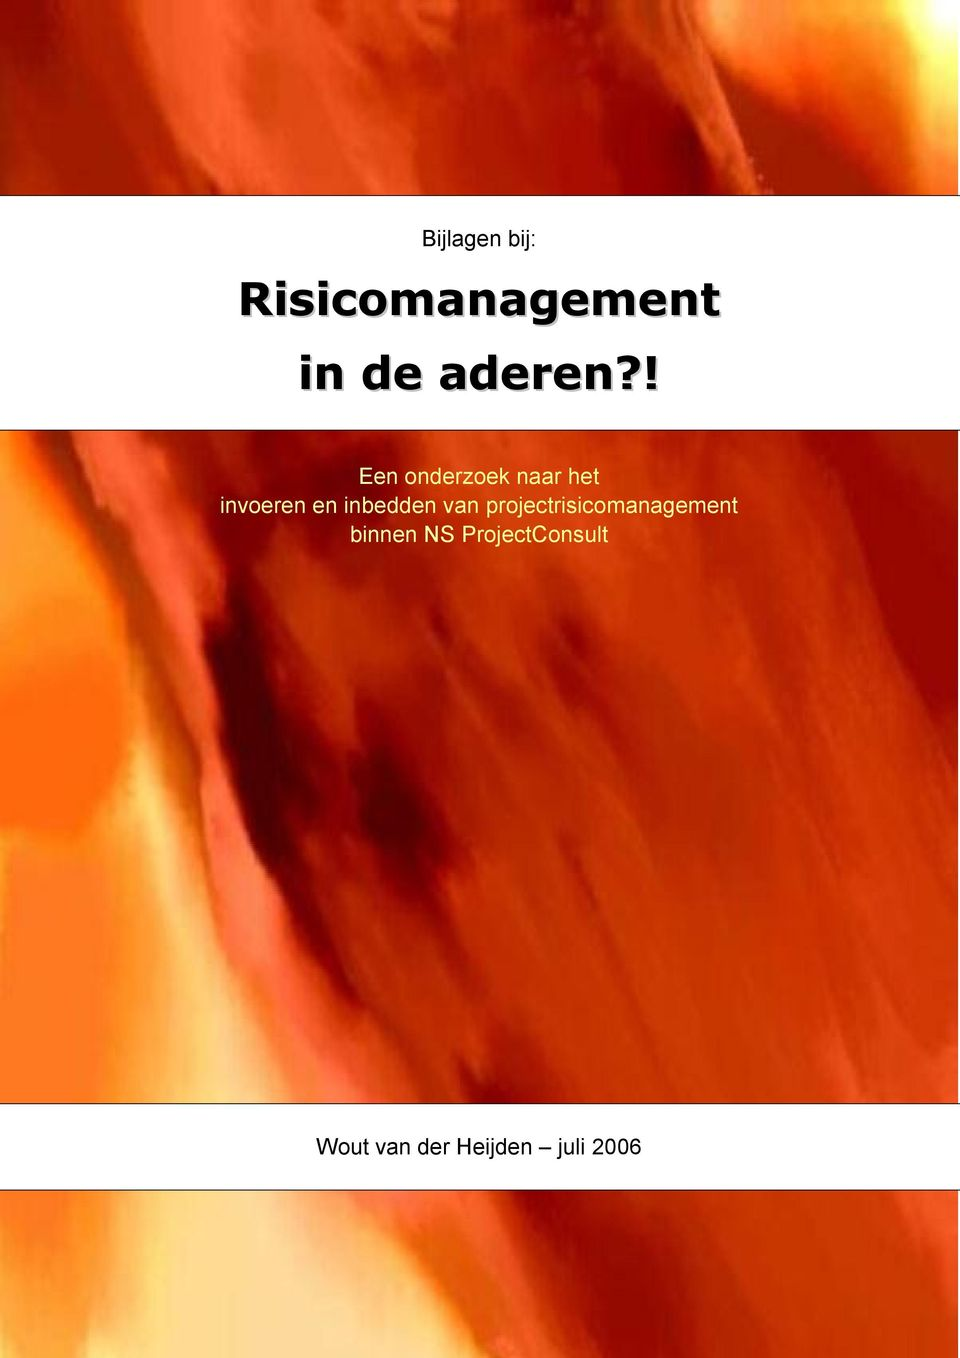 inbedden van projectrisicomanagement